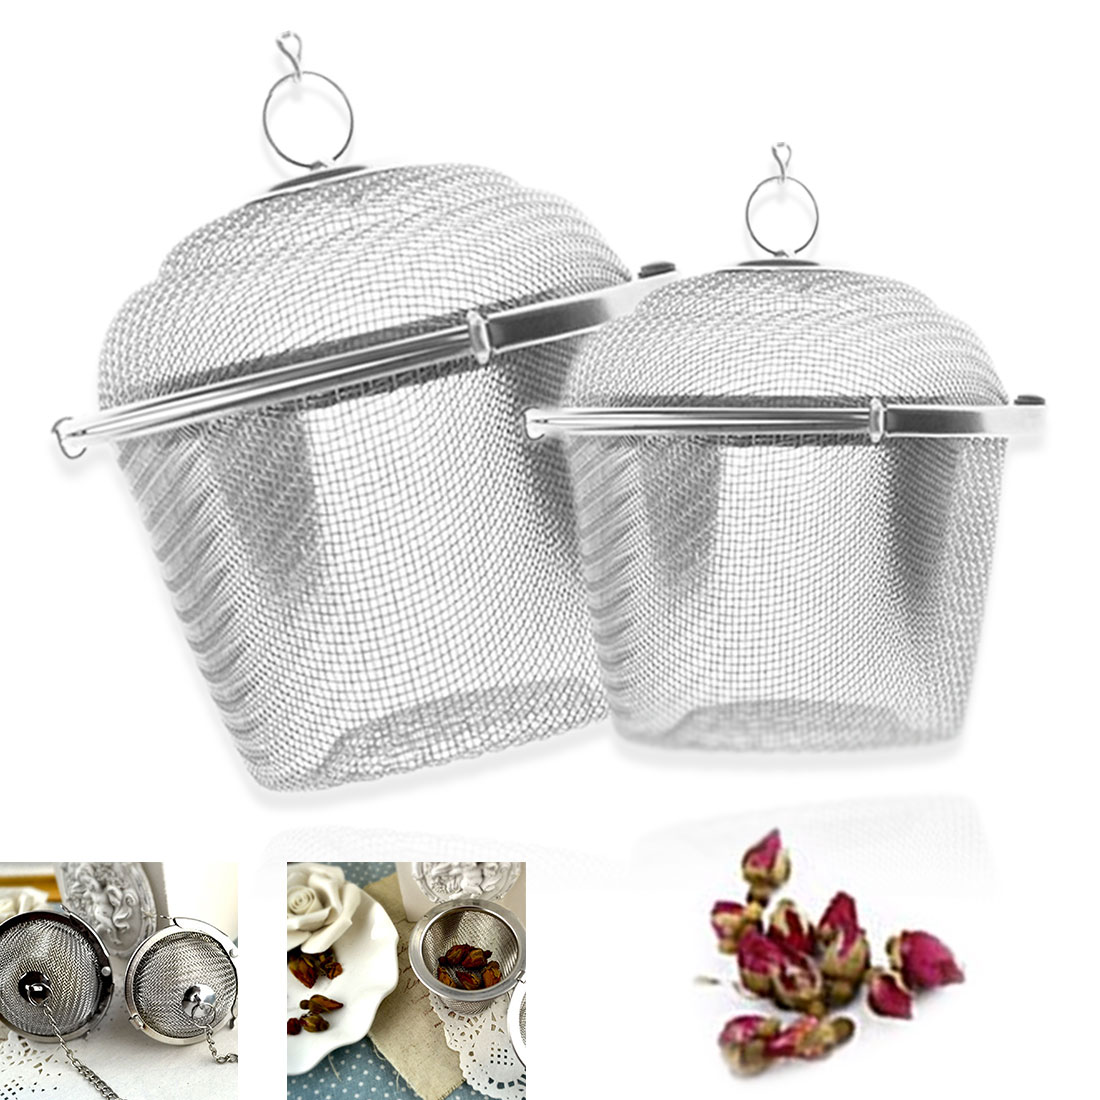 45/55 Stainless Steel Tea Infuser Locking Spice Tea Strainer Reusable Mesh Tea Ball Filter Loose Tea Spice Strainer